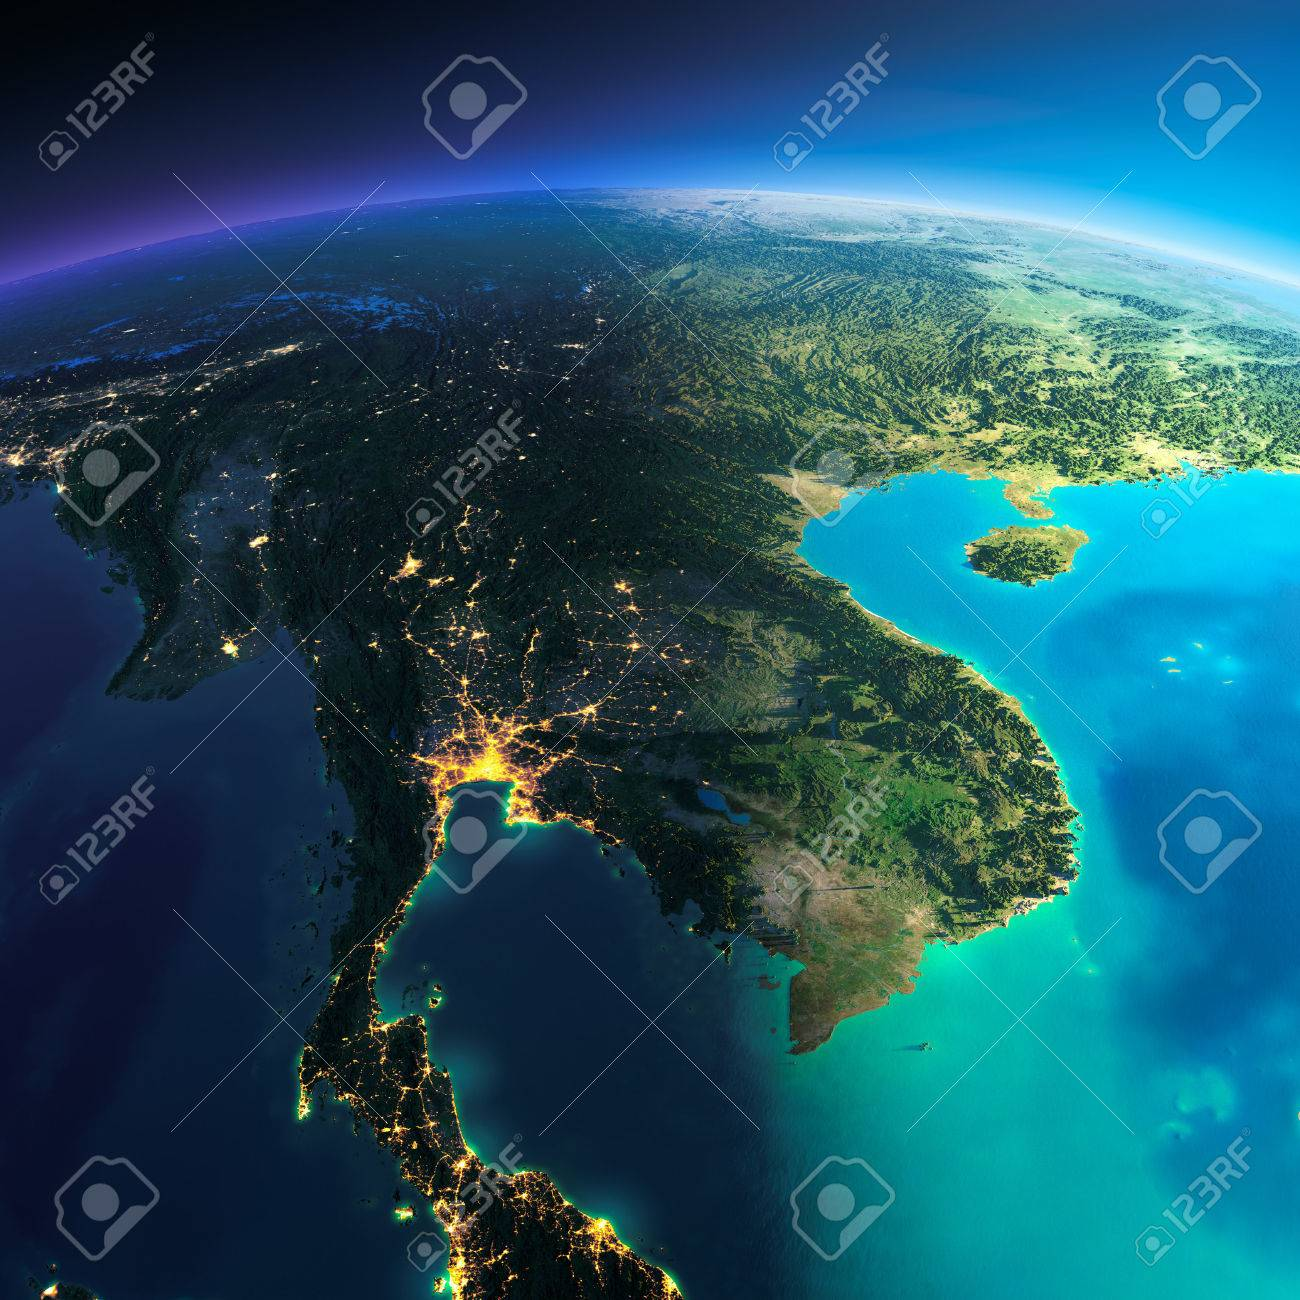 Highly detailed planet Earth. Night with glowing city lights gives way to day. The boundary of the night & day. Indochina peninsula. Elements of this image furnished by NASA - 39100774